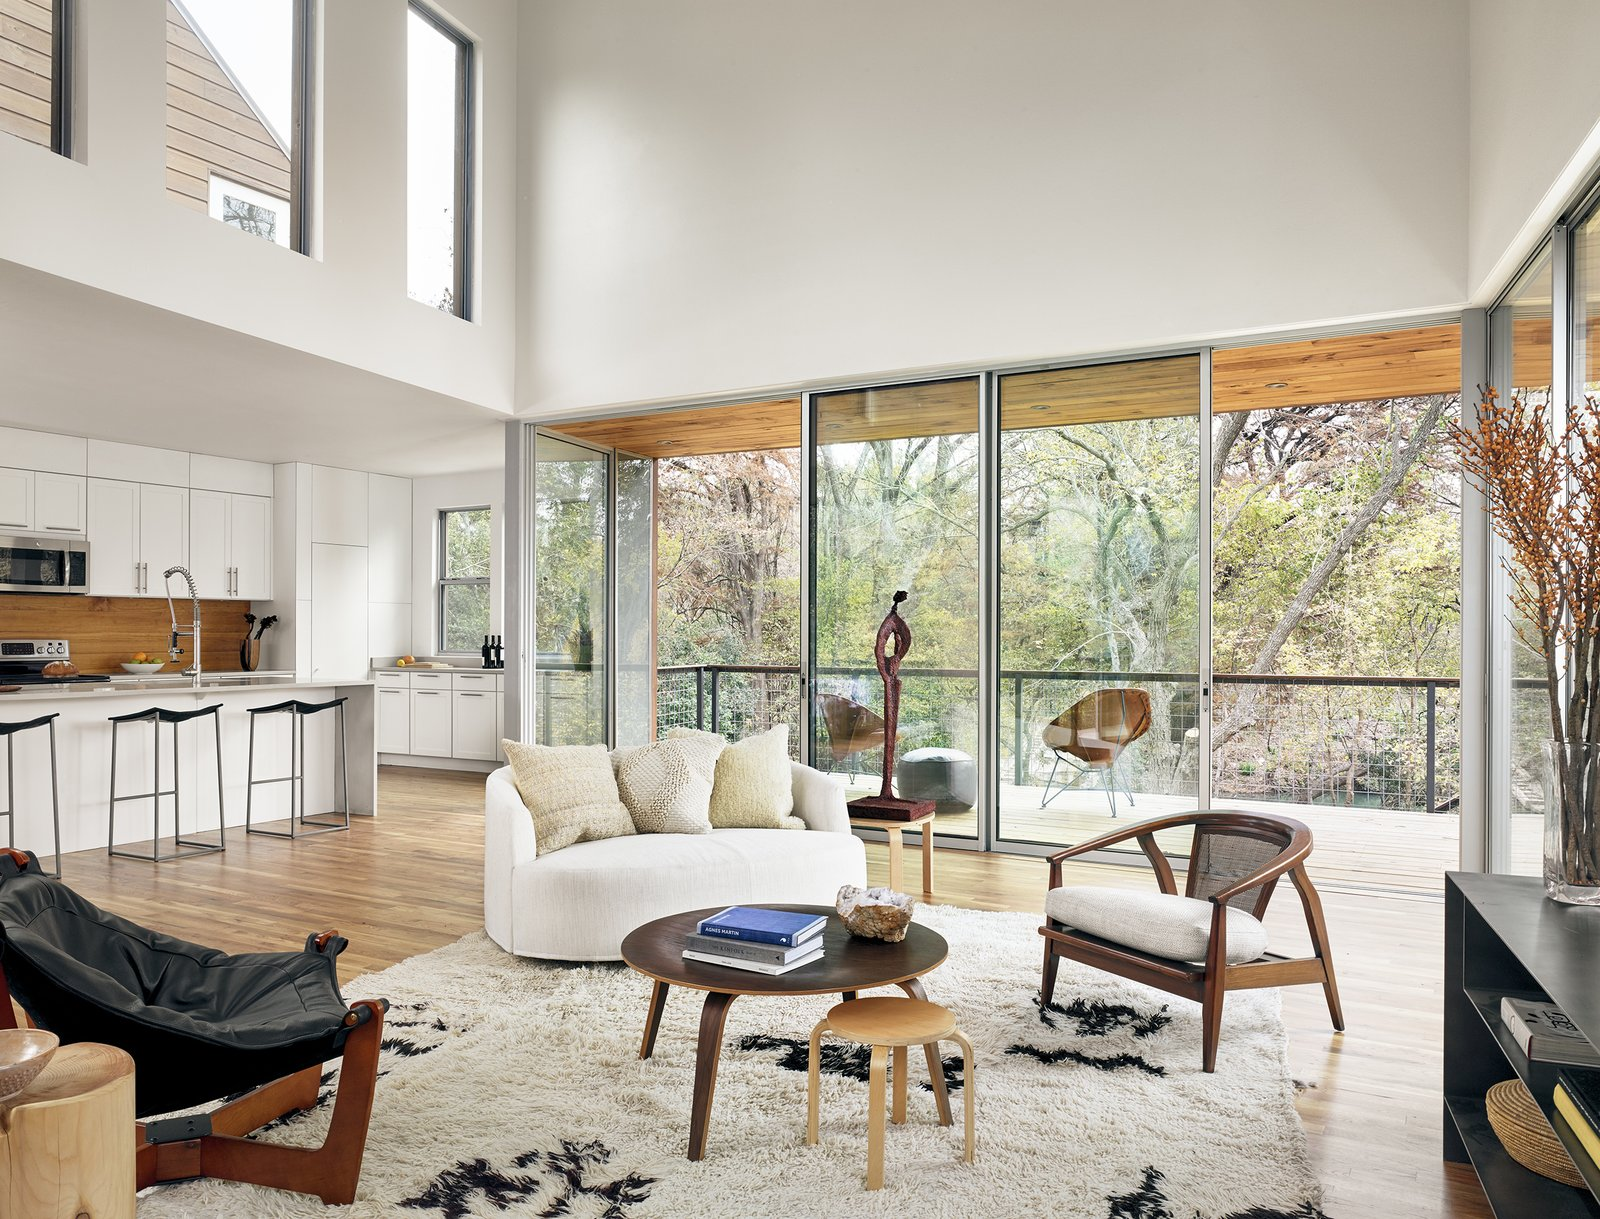 Living Room, Medium Hardwood Floor, Coffee Tables, Sofa, Stools, Rug Floor, Chair, Ceiling Lighting, Recessed Lighting, and Bar View of living area, kitchen, and outdoor porch by Low Design Office  Guadalupe River House